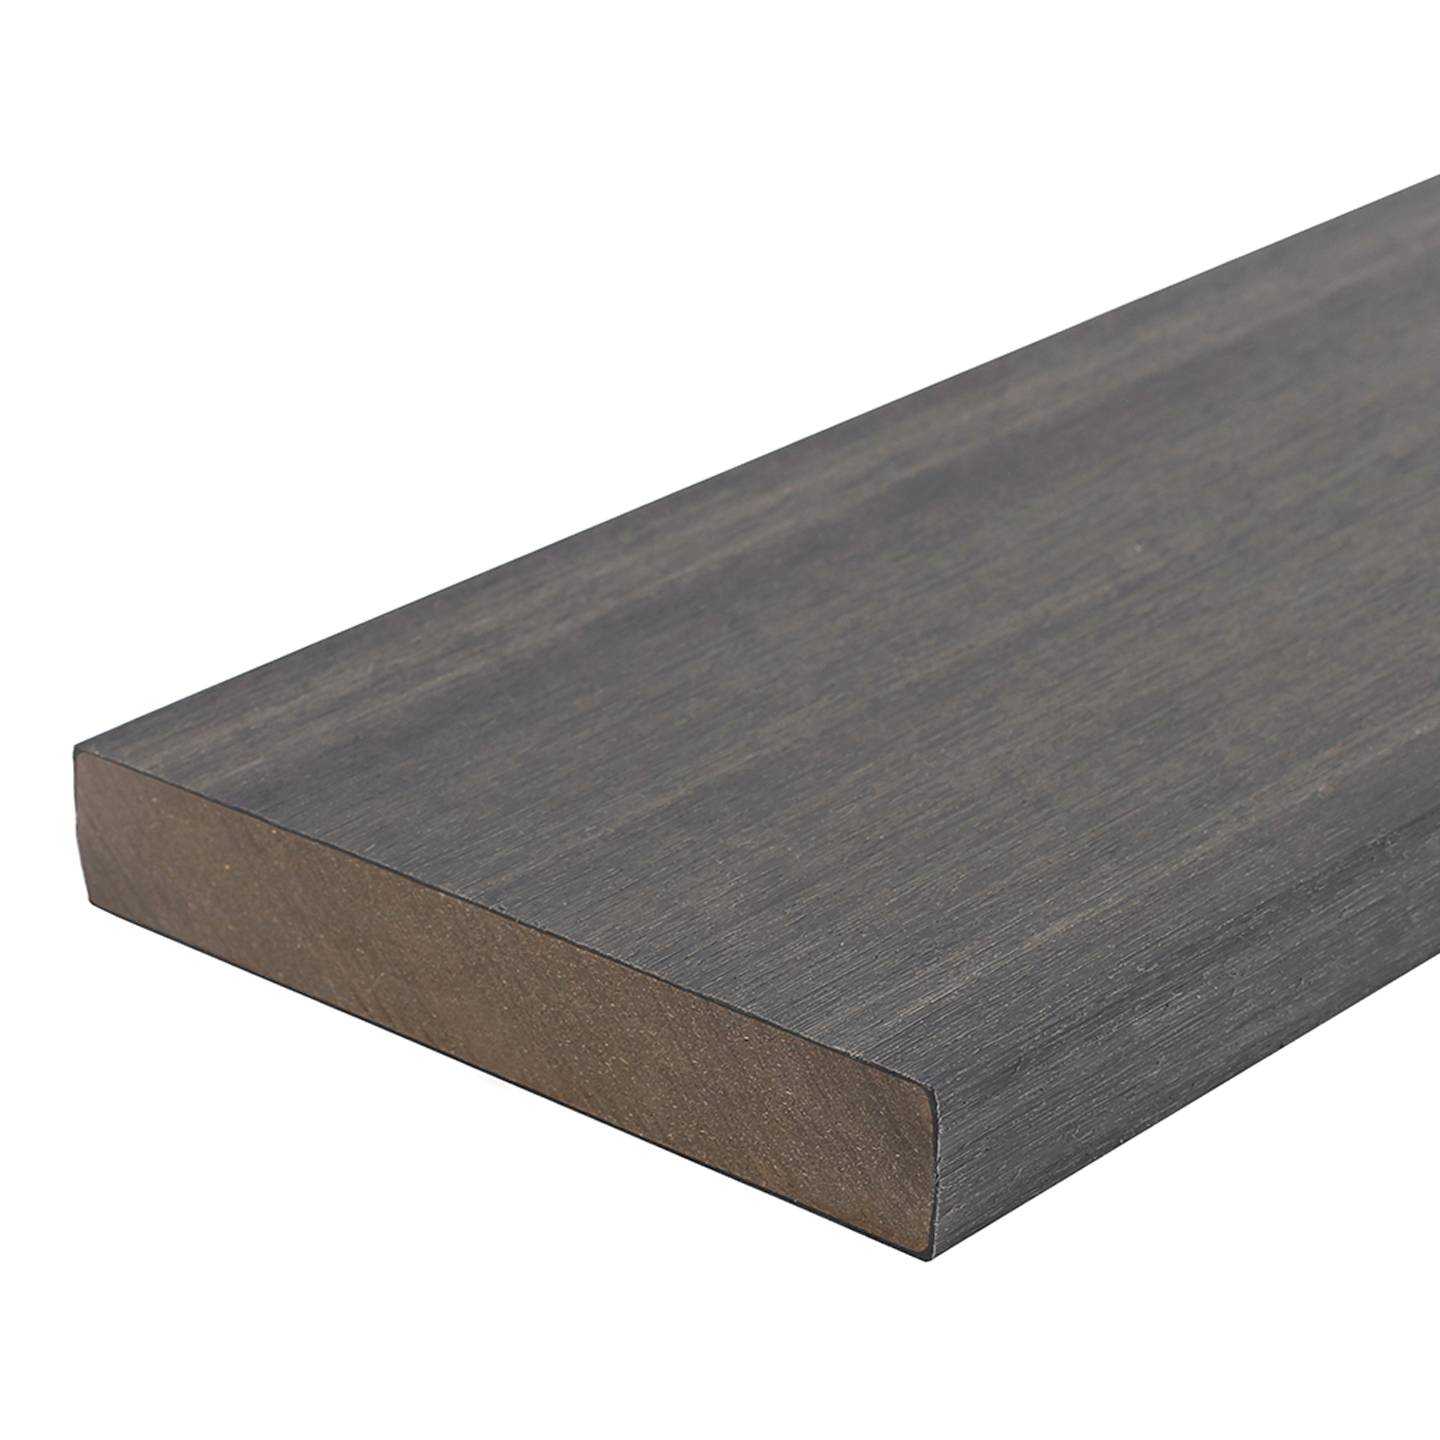 Westwood | Starline kantplank 23x138mm | Multigrey dark 300 cm